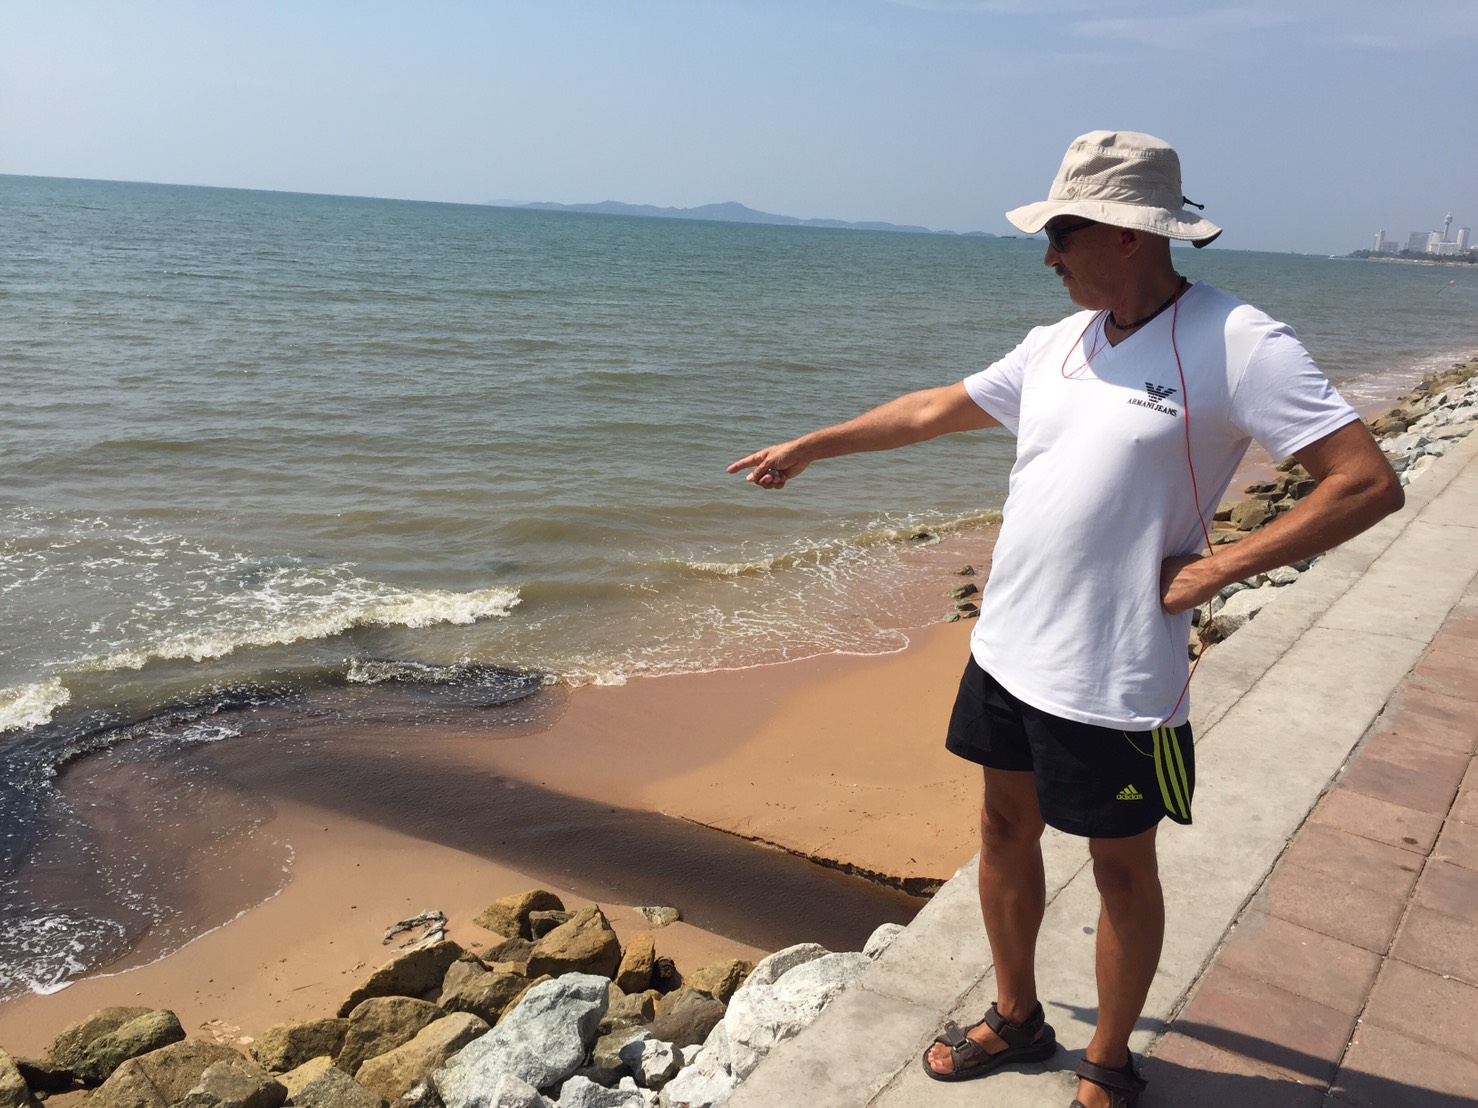 Najomtien beachgoers complained that a 50-meter stretch of oceanfront has been polluted by sewage.